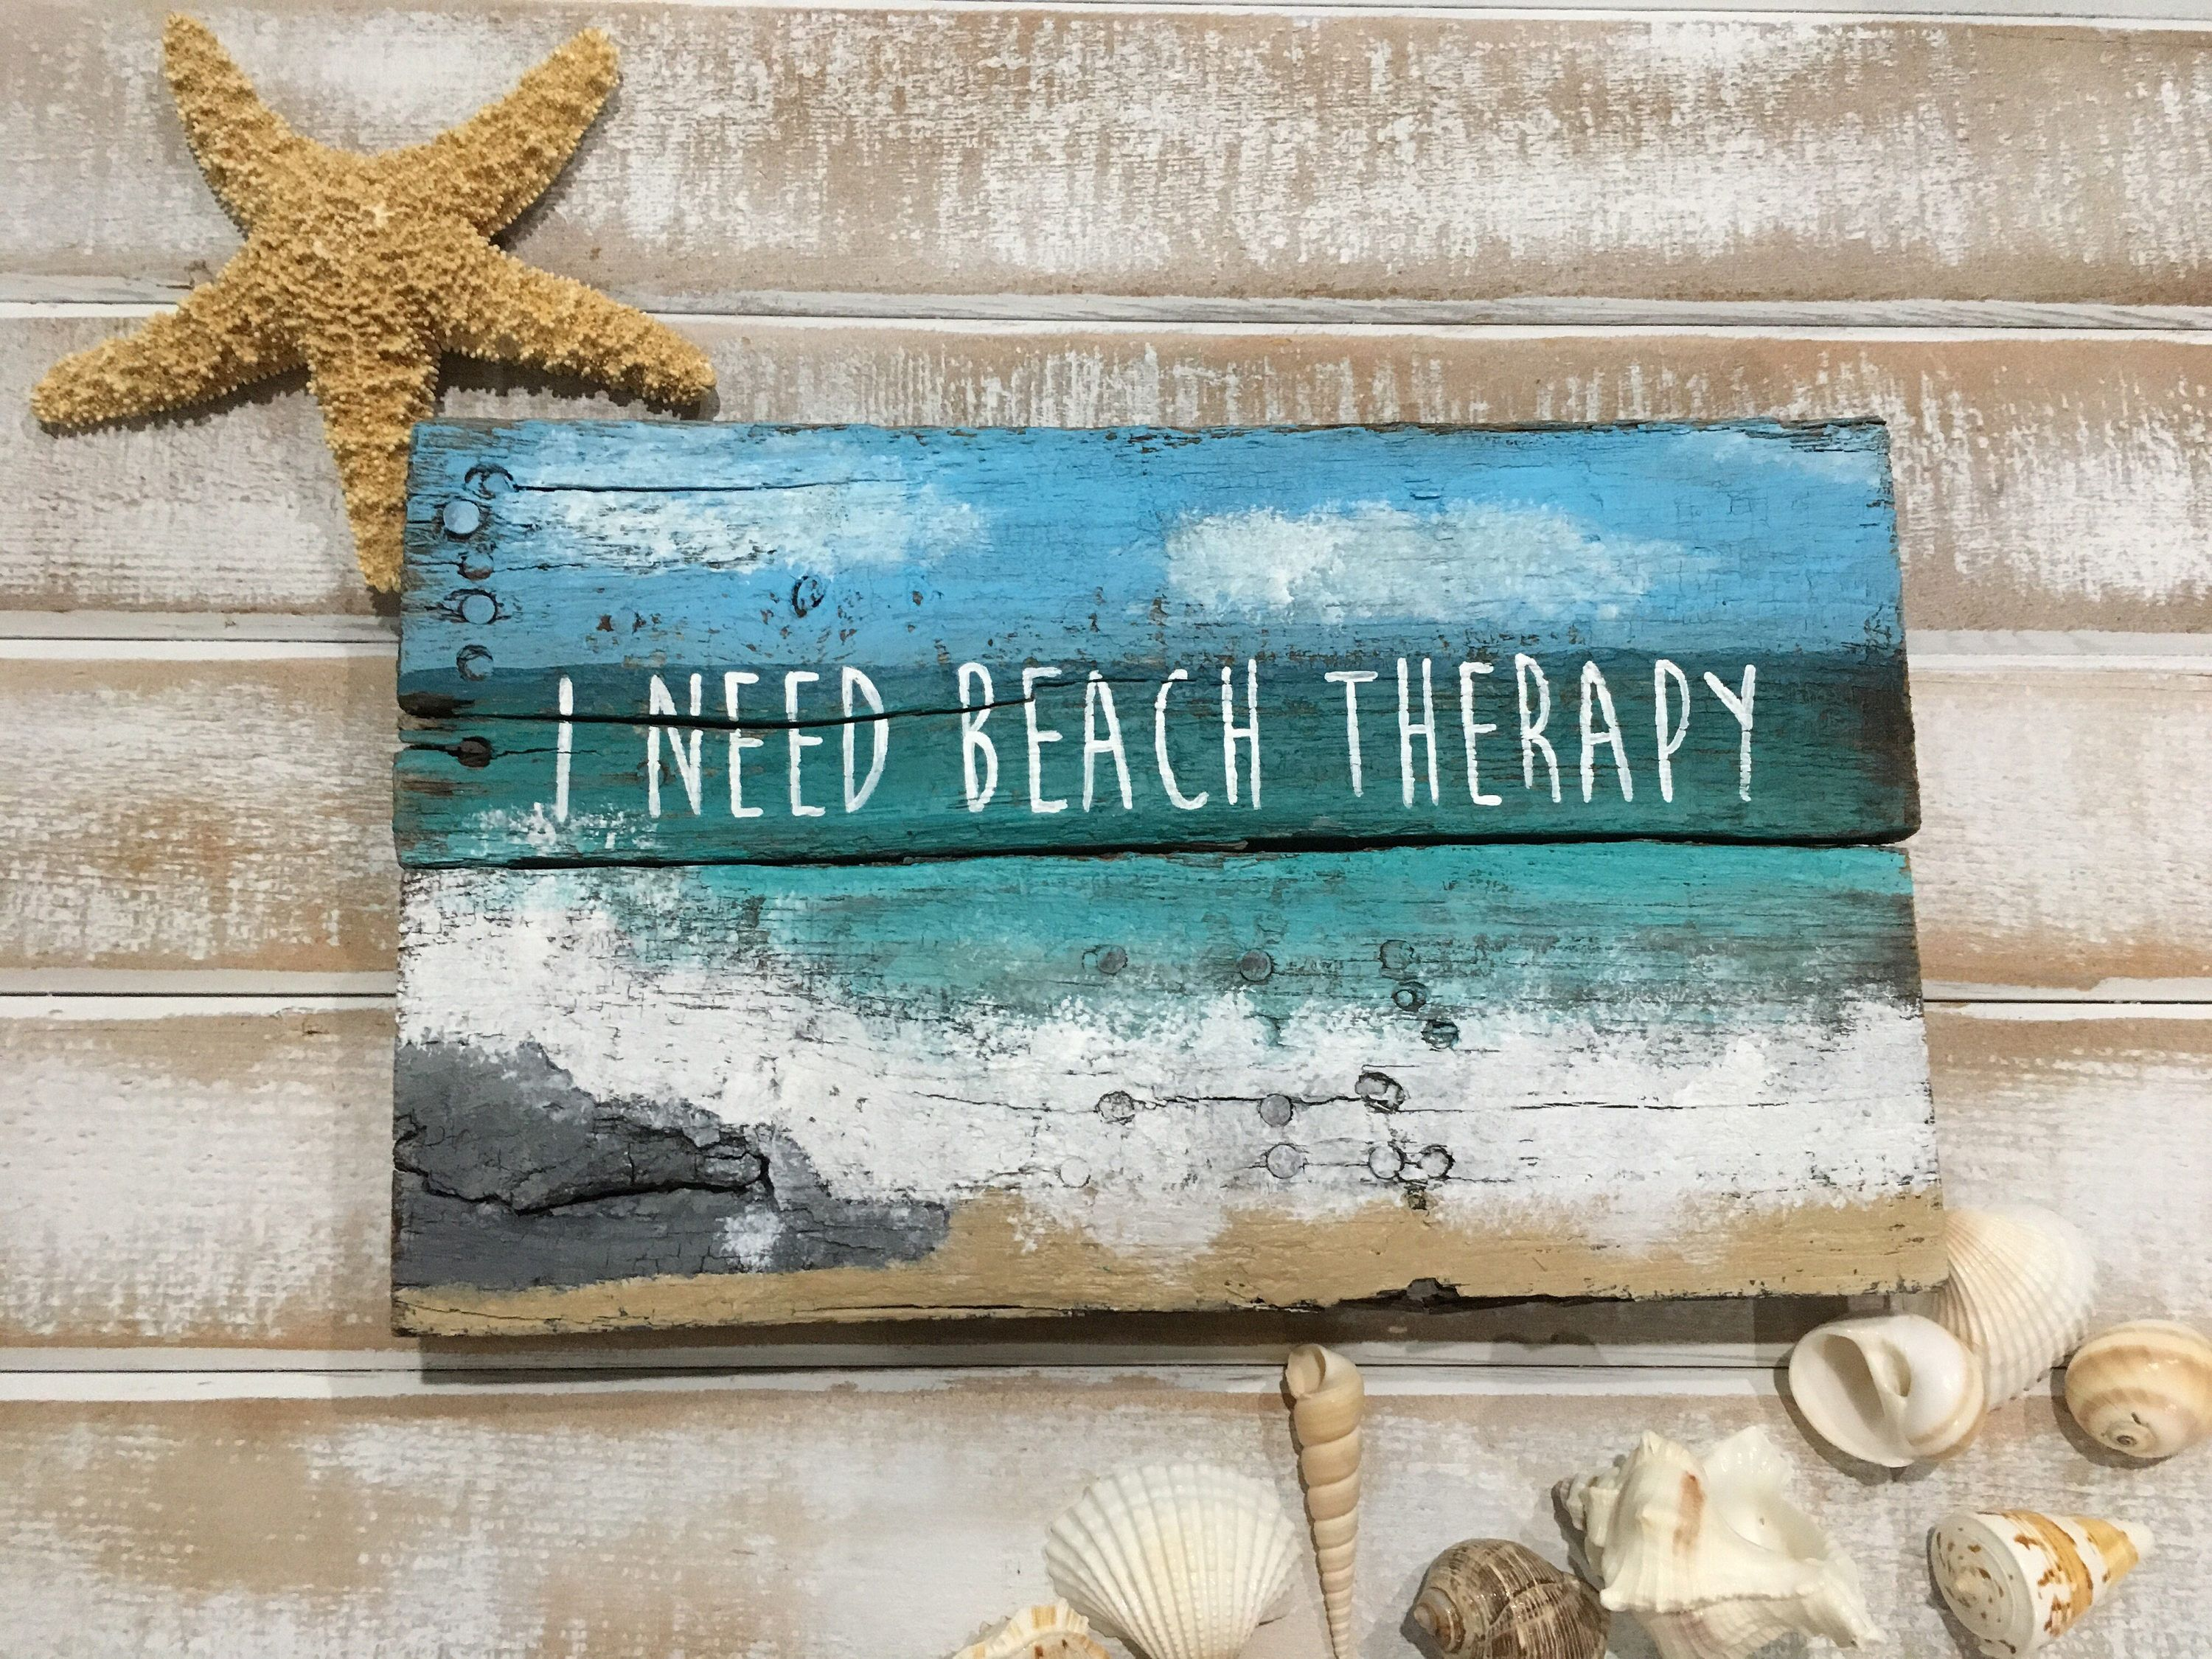 I Need Beach Therapy Pallet Sign From My Etsy Shop Https Www Etsy Com Listing 529051079 Beach Signs Beach Decor Be Beach Signs Beach Signs Wooden Beach Decor